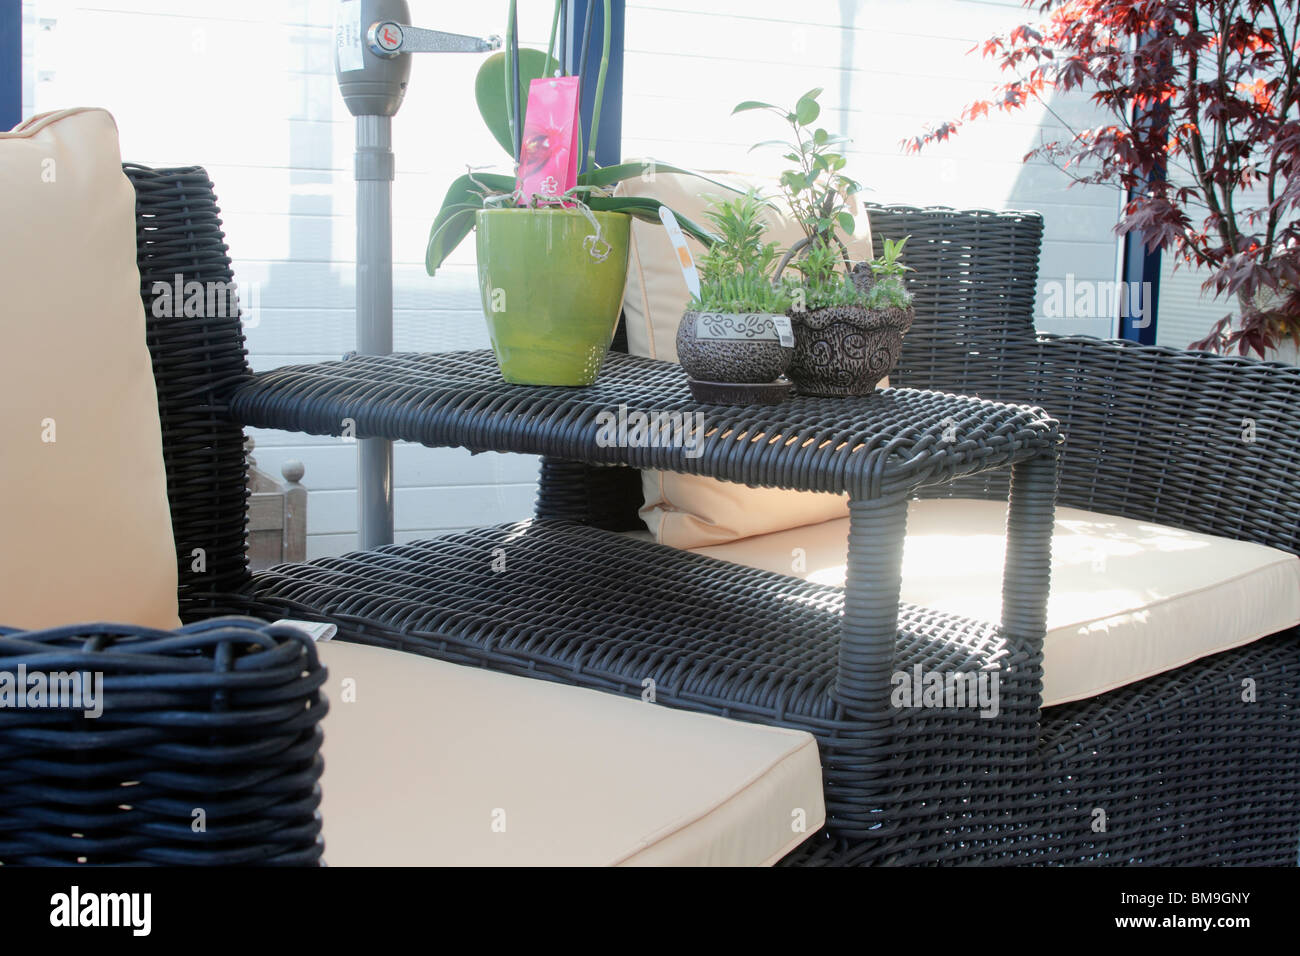 Japanese Patio Furniture. Garden And Patio Furniture Rattan Love Seat With  Japanese Style Parasol Brookfields